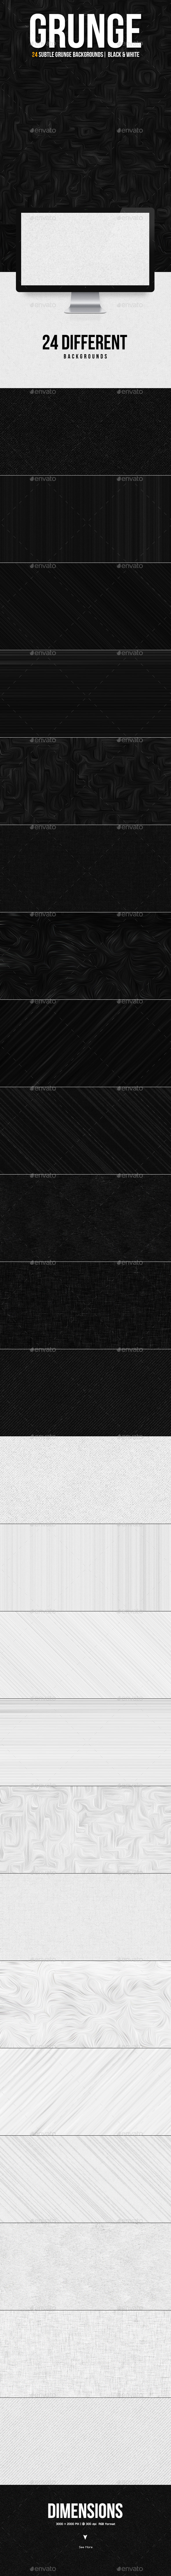 Subtle Texture Backgrounds | Black & White